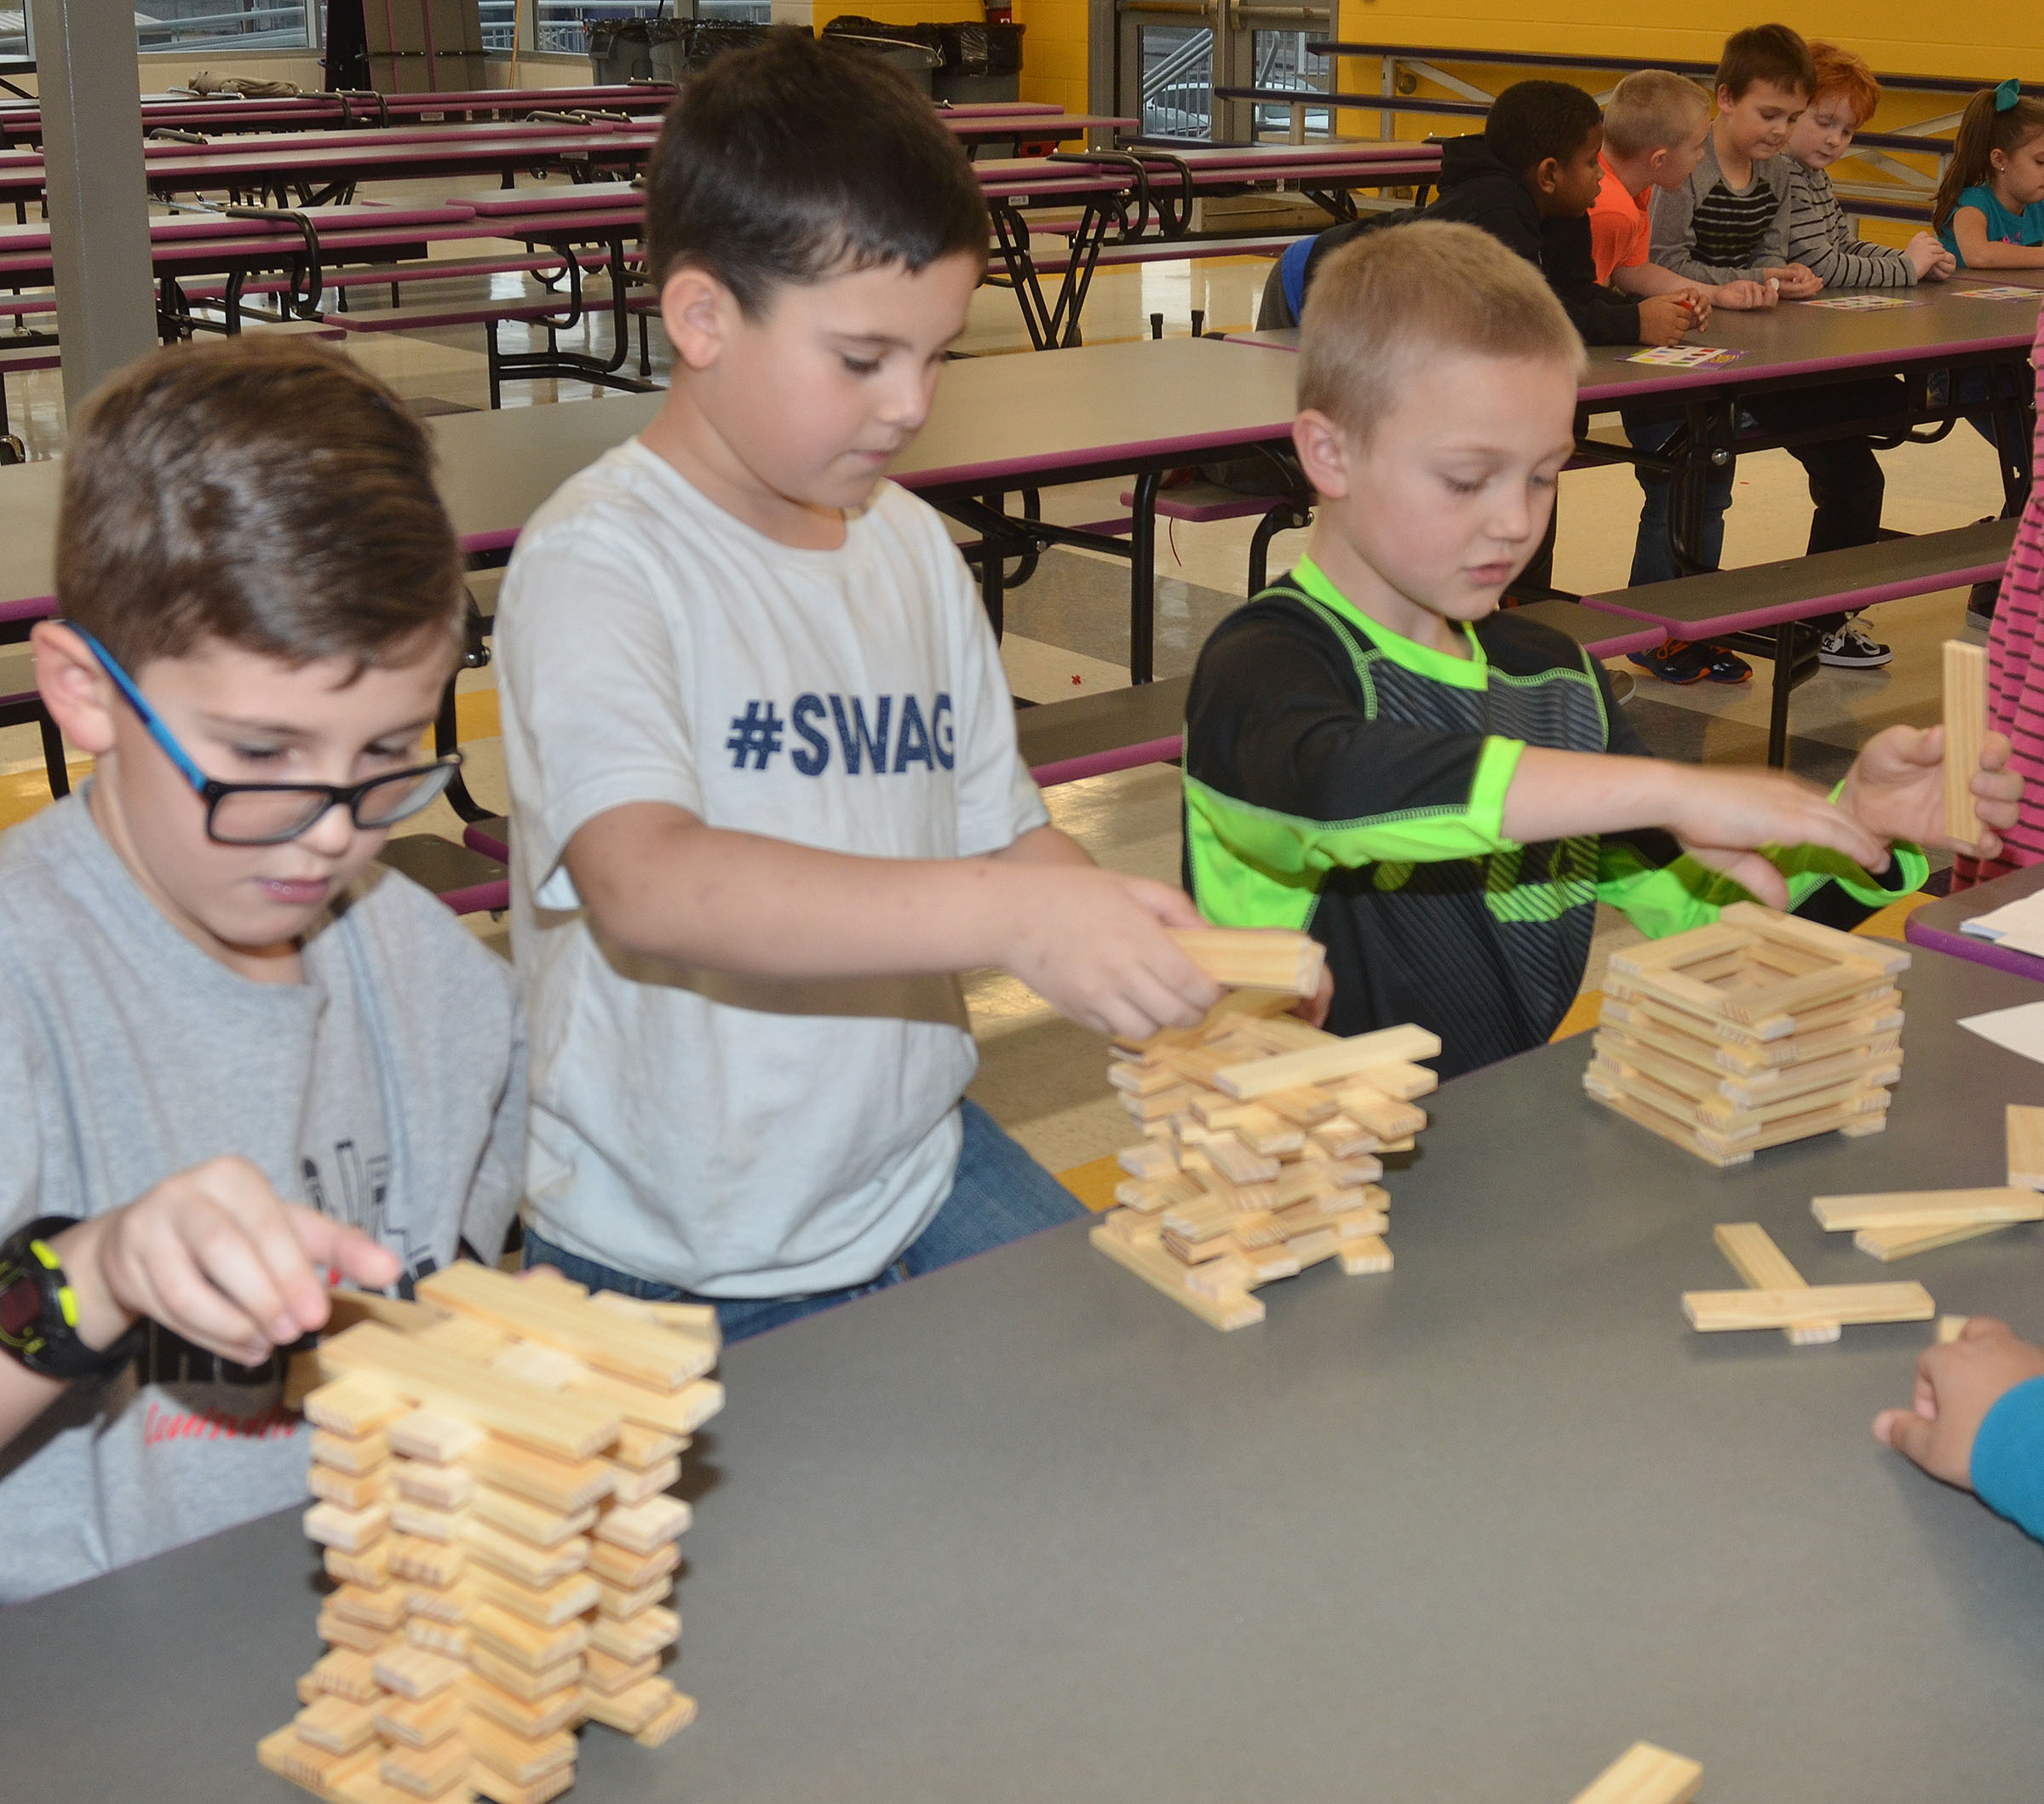 From left, CES second-graders Tye Rhodes, Damien Clark and Trenton Harris build with wooden blocks.